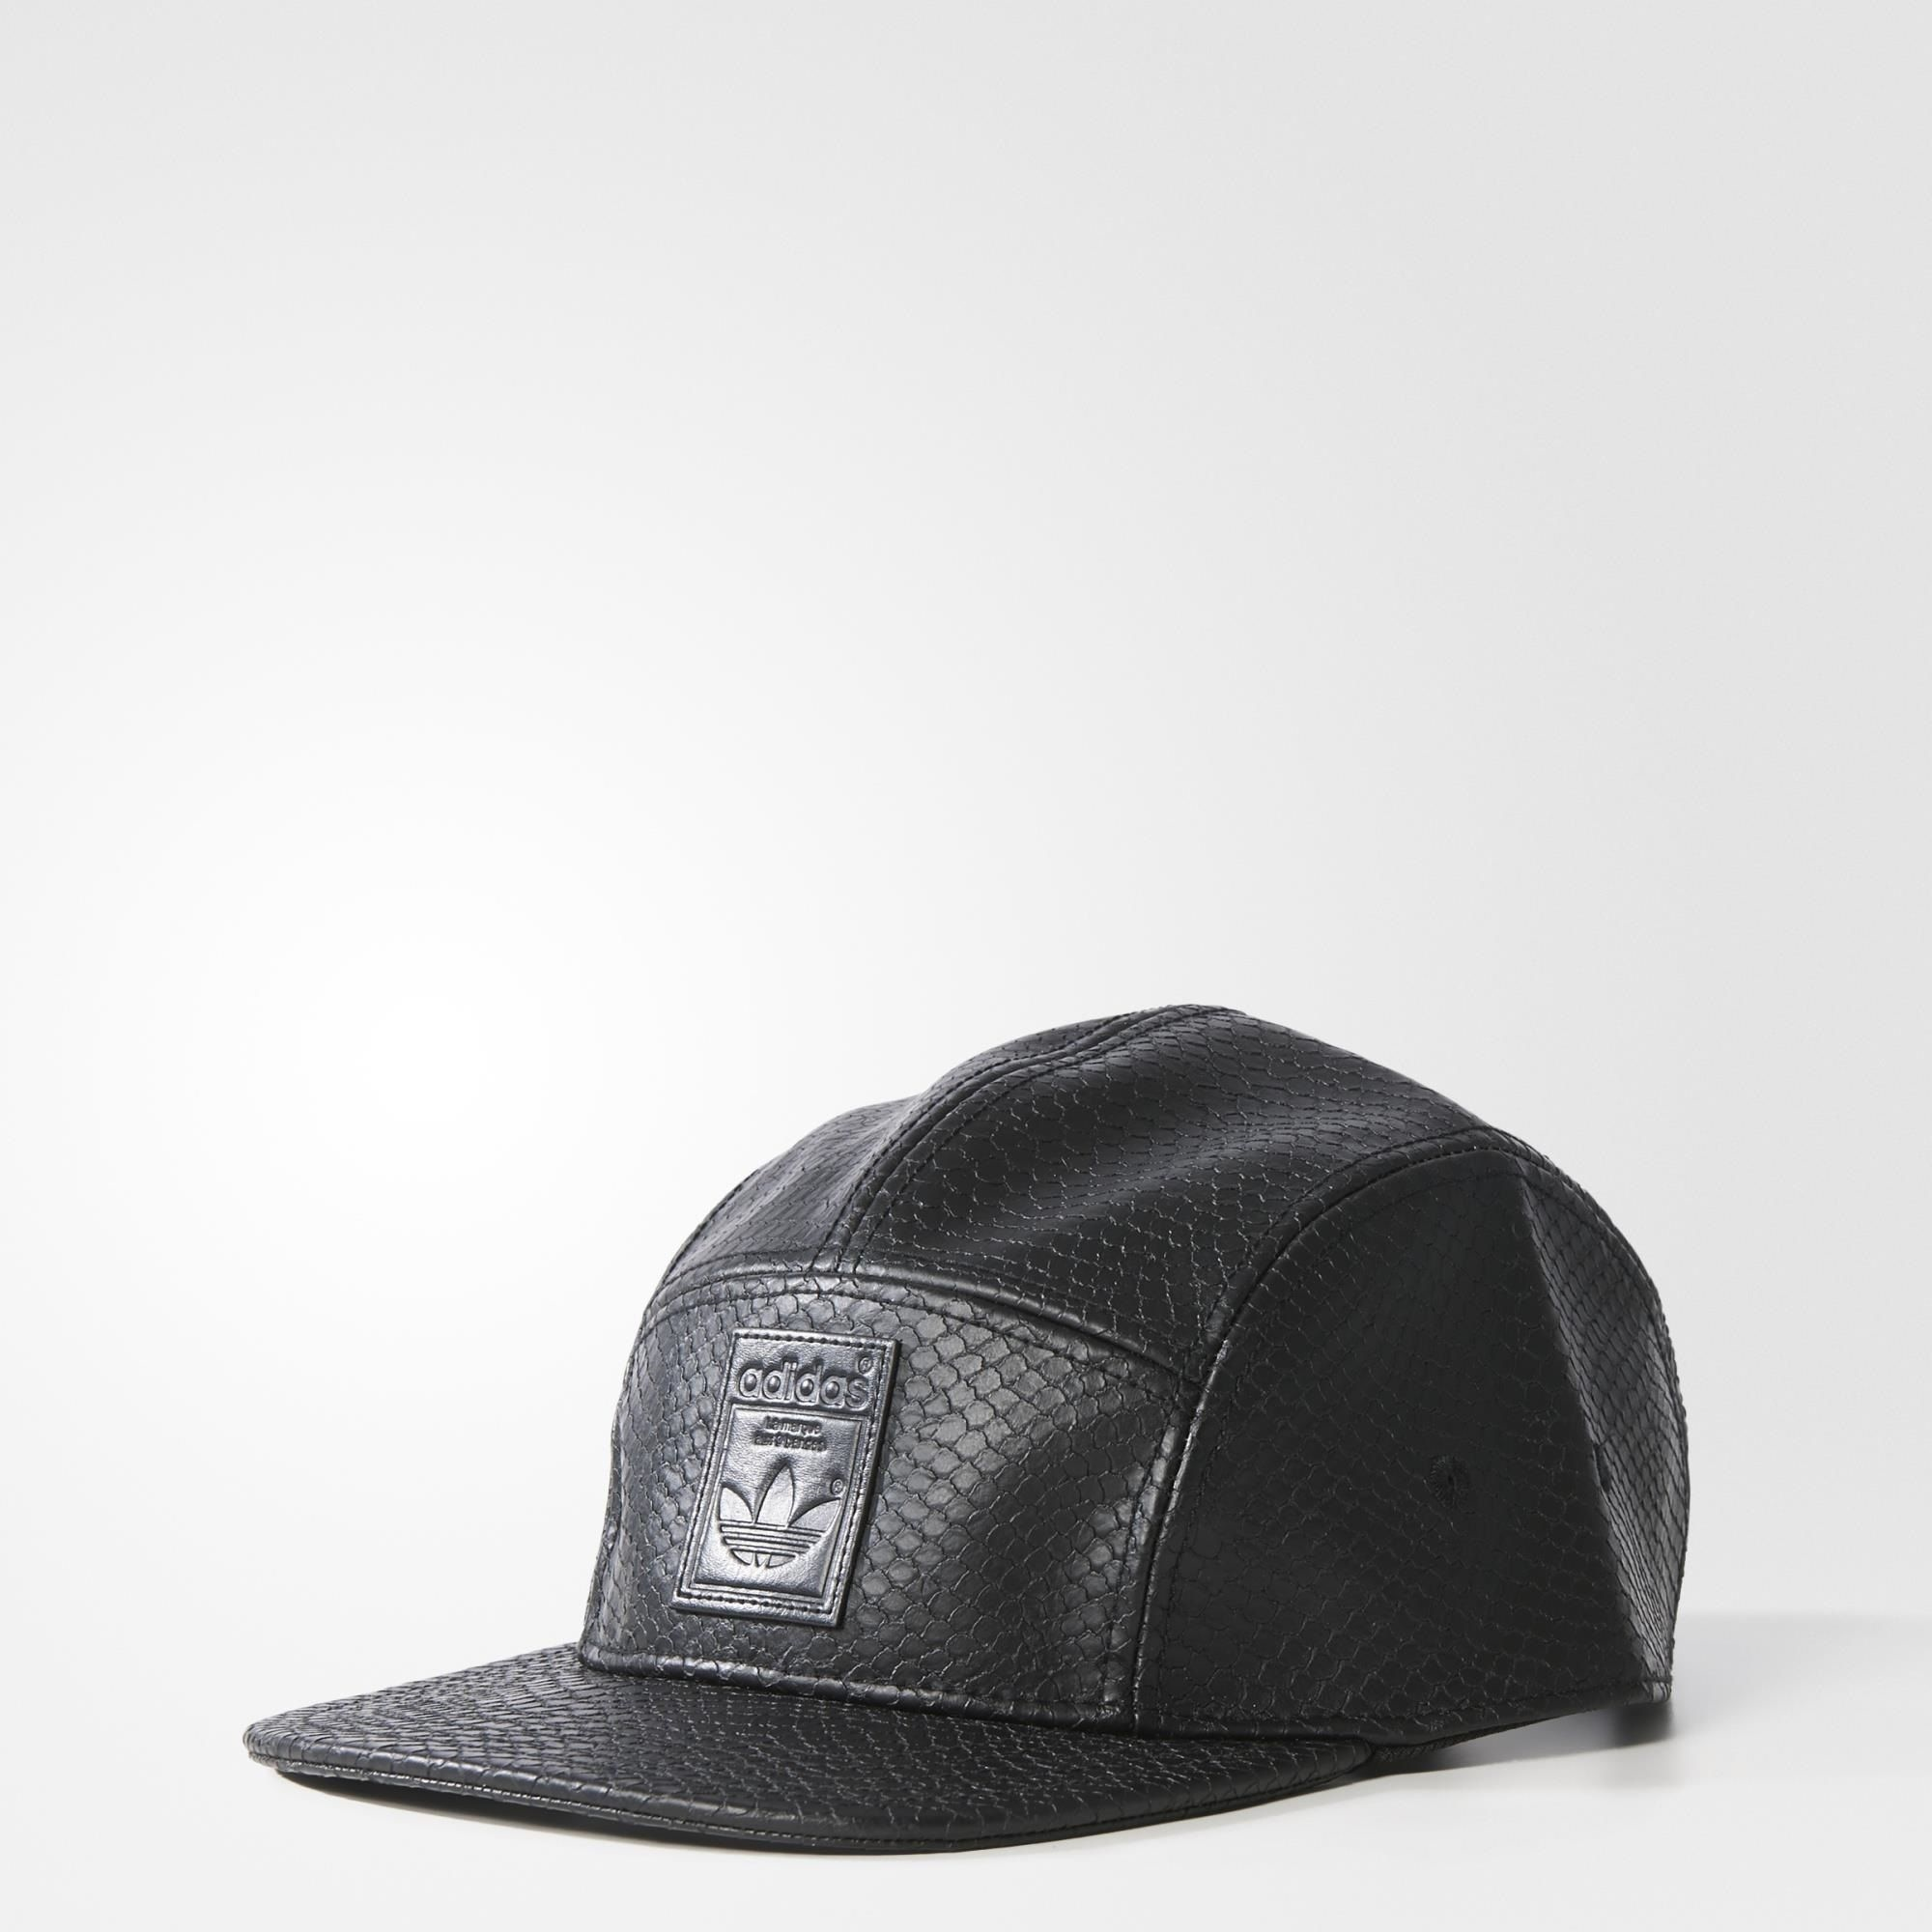 Details about adidas Originals Womens 5 Panel Snakeskin Cap Faux Leather  Black  2d1ba4c9dc